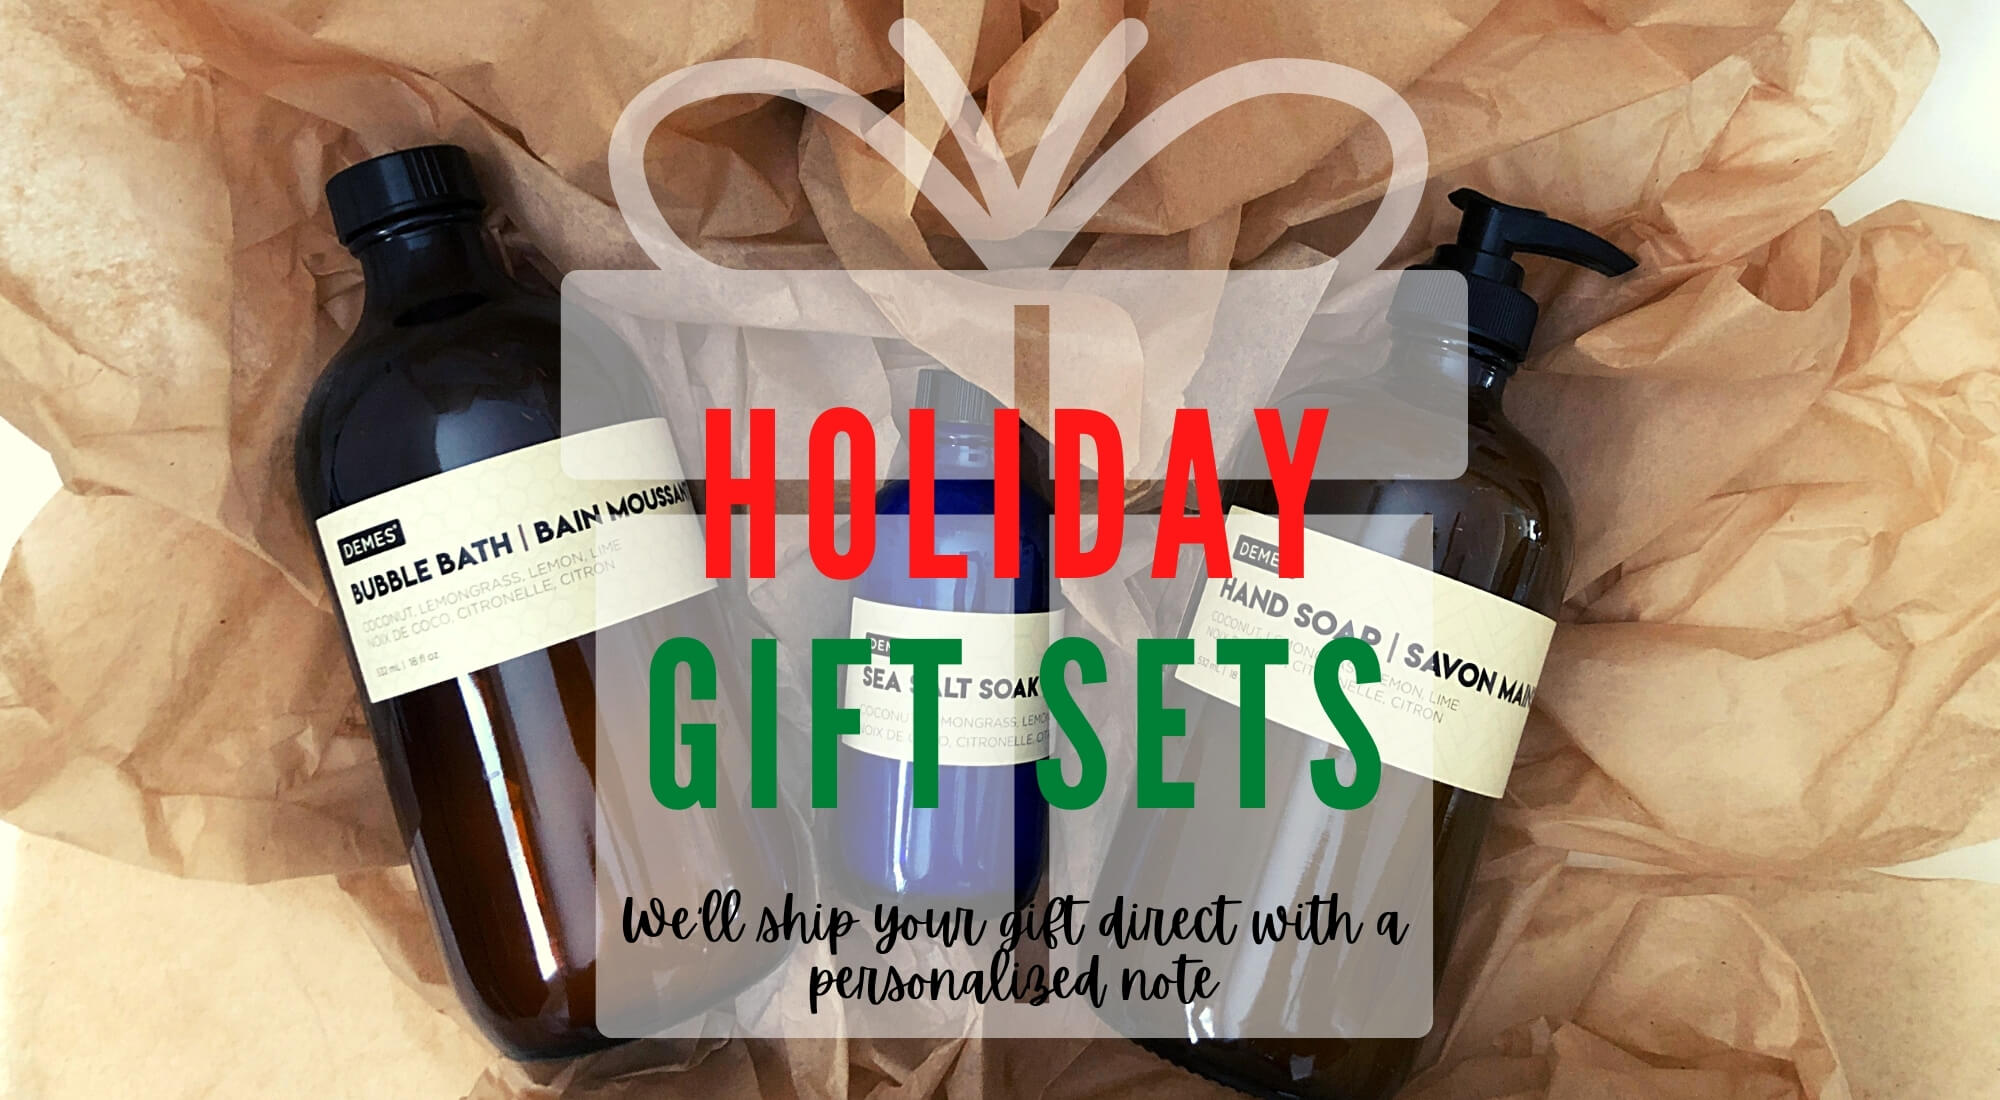 Holiday Gift Sets, gifts, gift ideas, natural vegan gift ideas